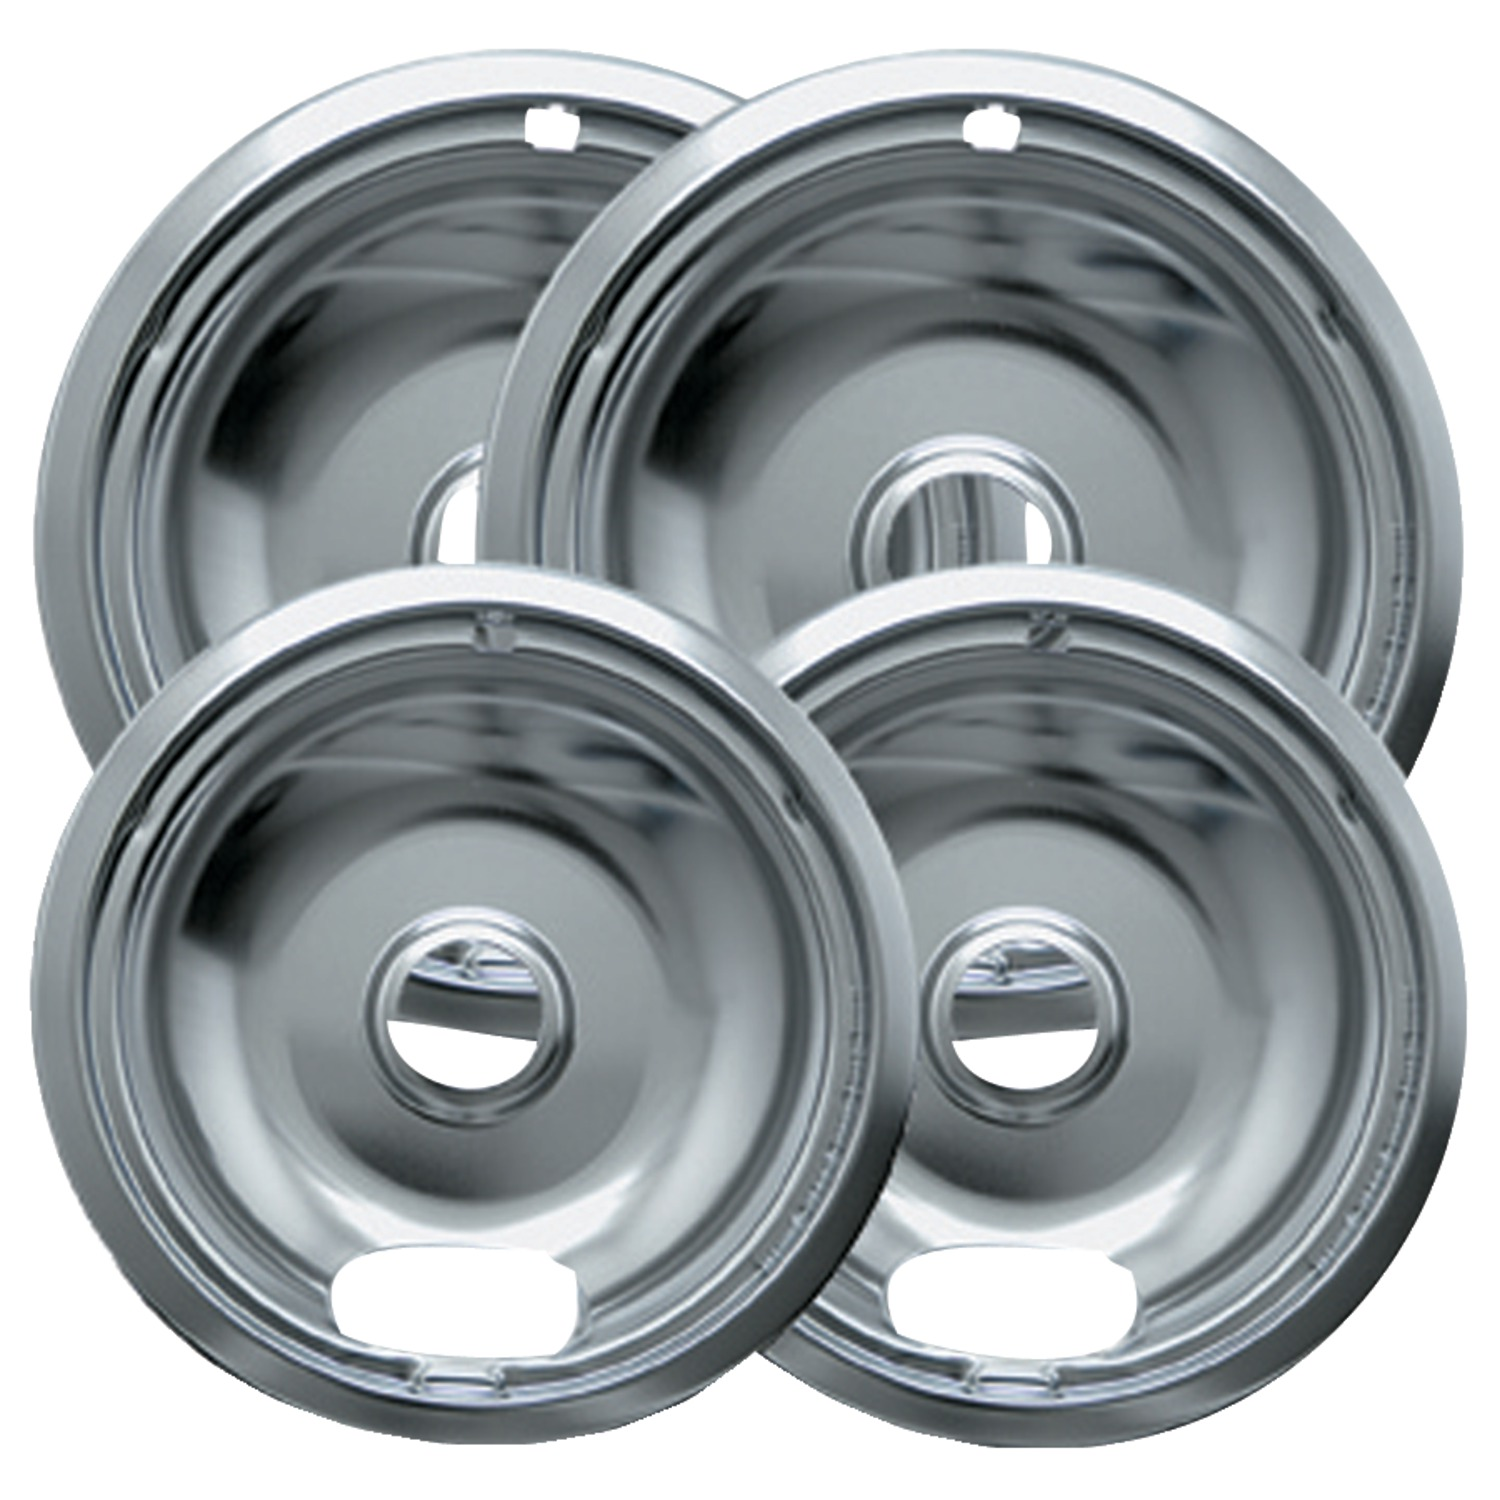 Range Kleen 4-Piece Drip Bowl, Style A fits Plug-in Electric Ranges Amana, Crosley, Frigidaire, Kenmore, Maytag, Whirlpool, Chrome